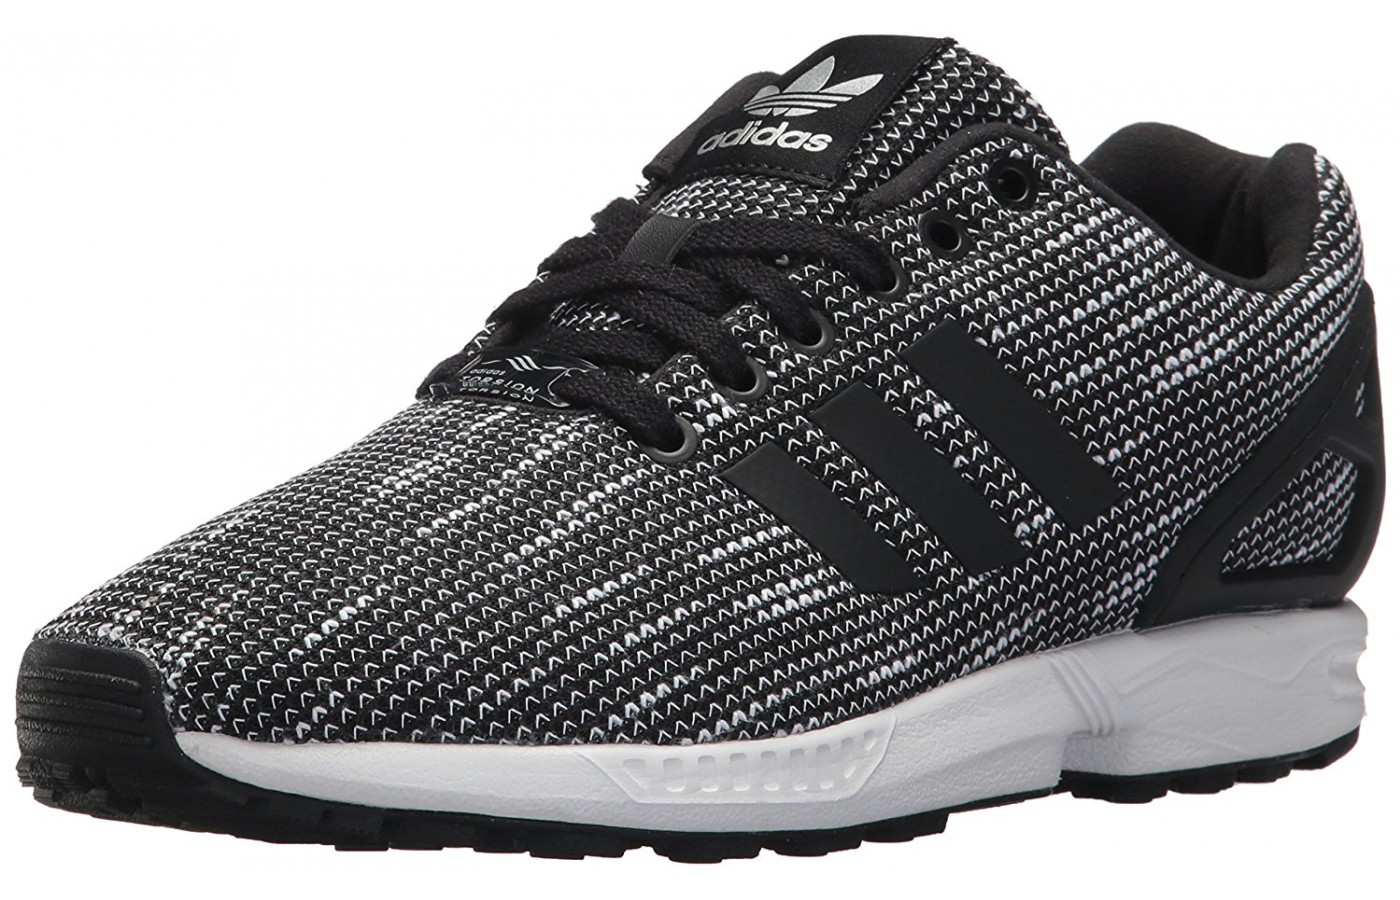 7231c75a386f2 Adidas ZX Flux Reviewed   Tested for Performance in 2019